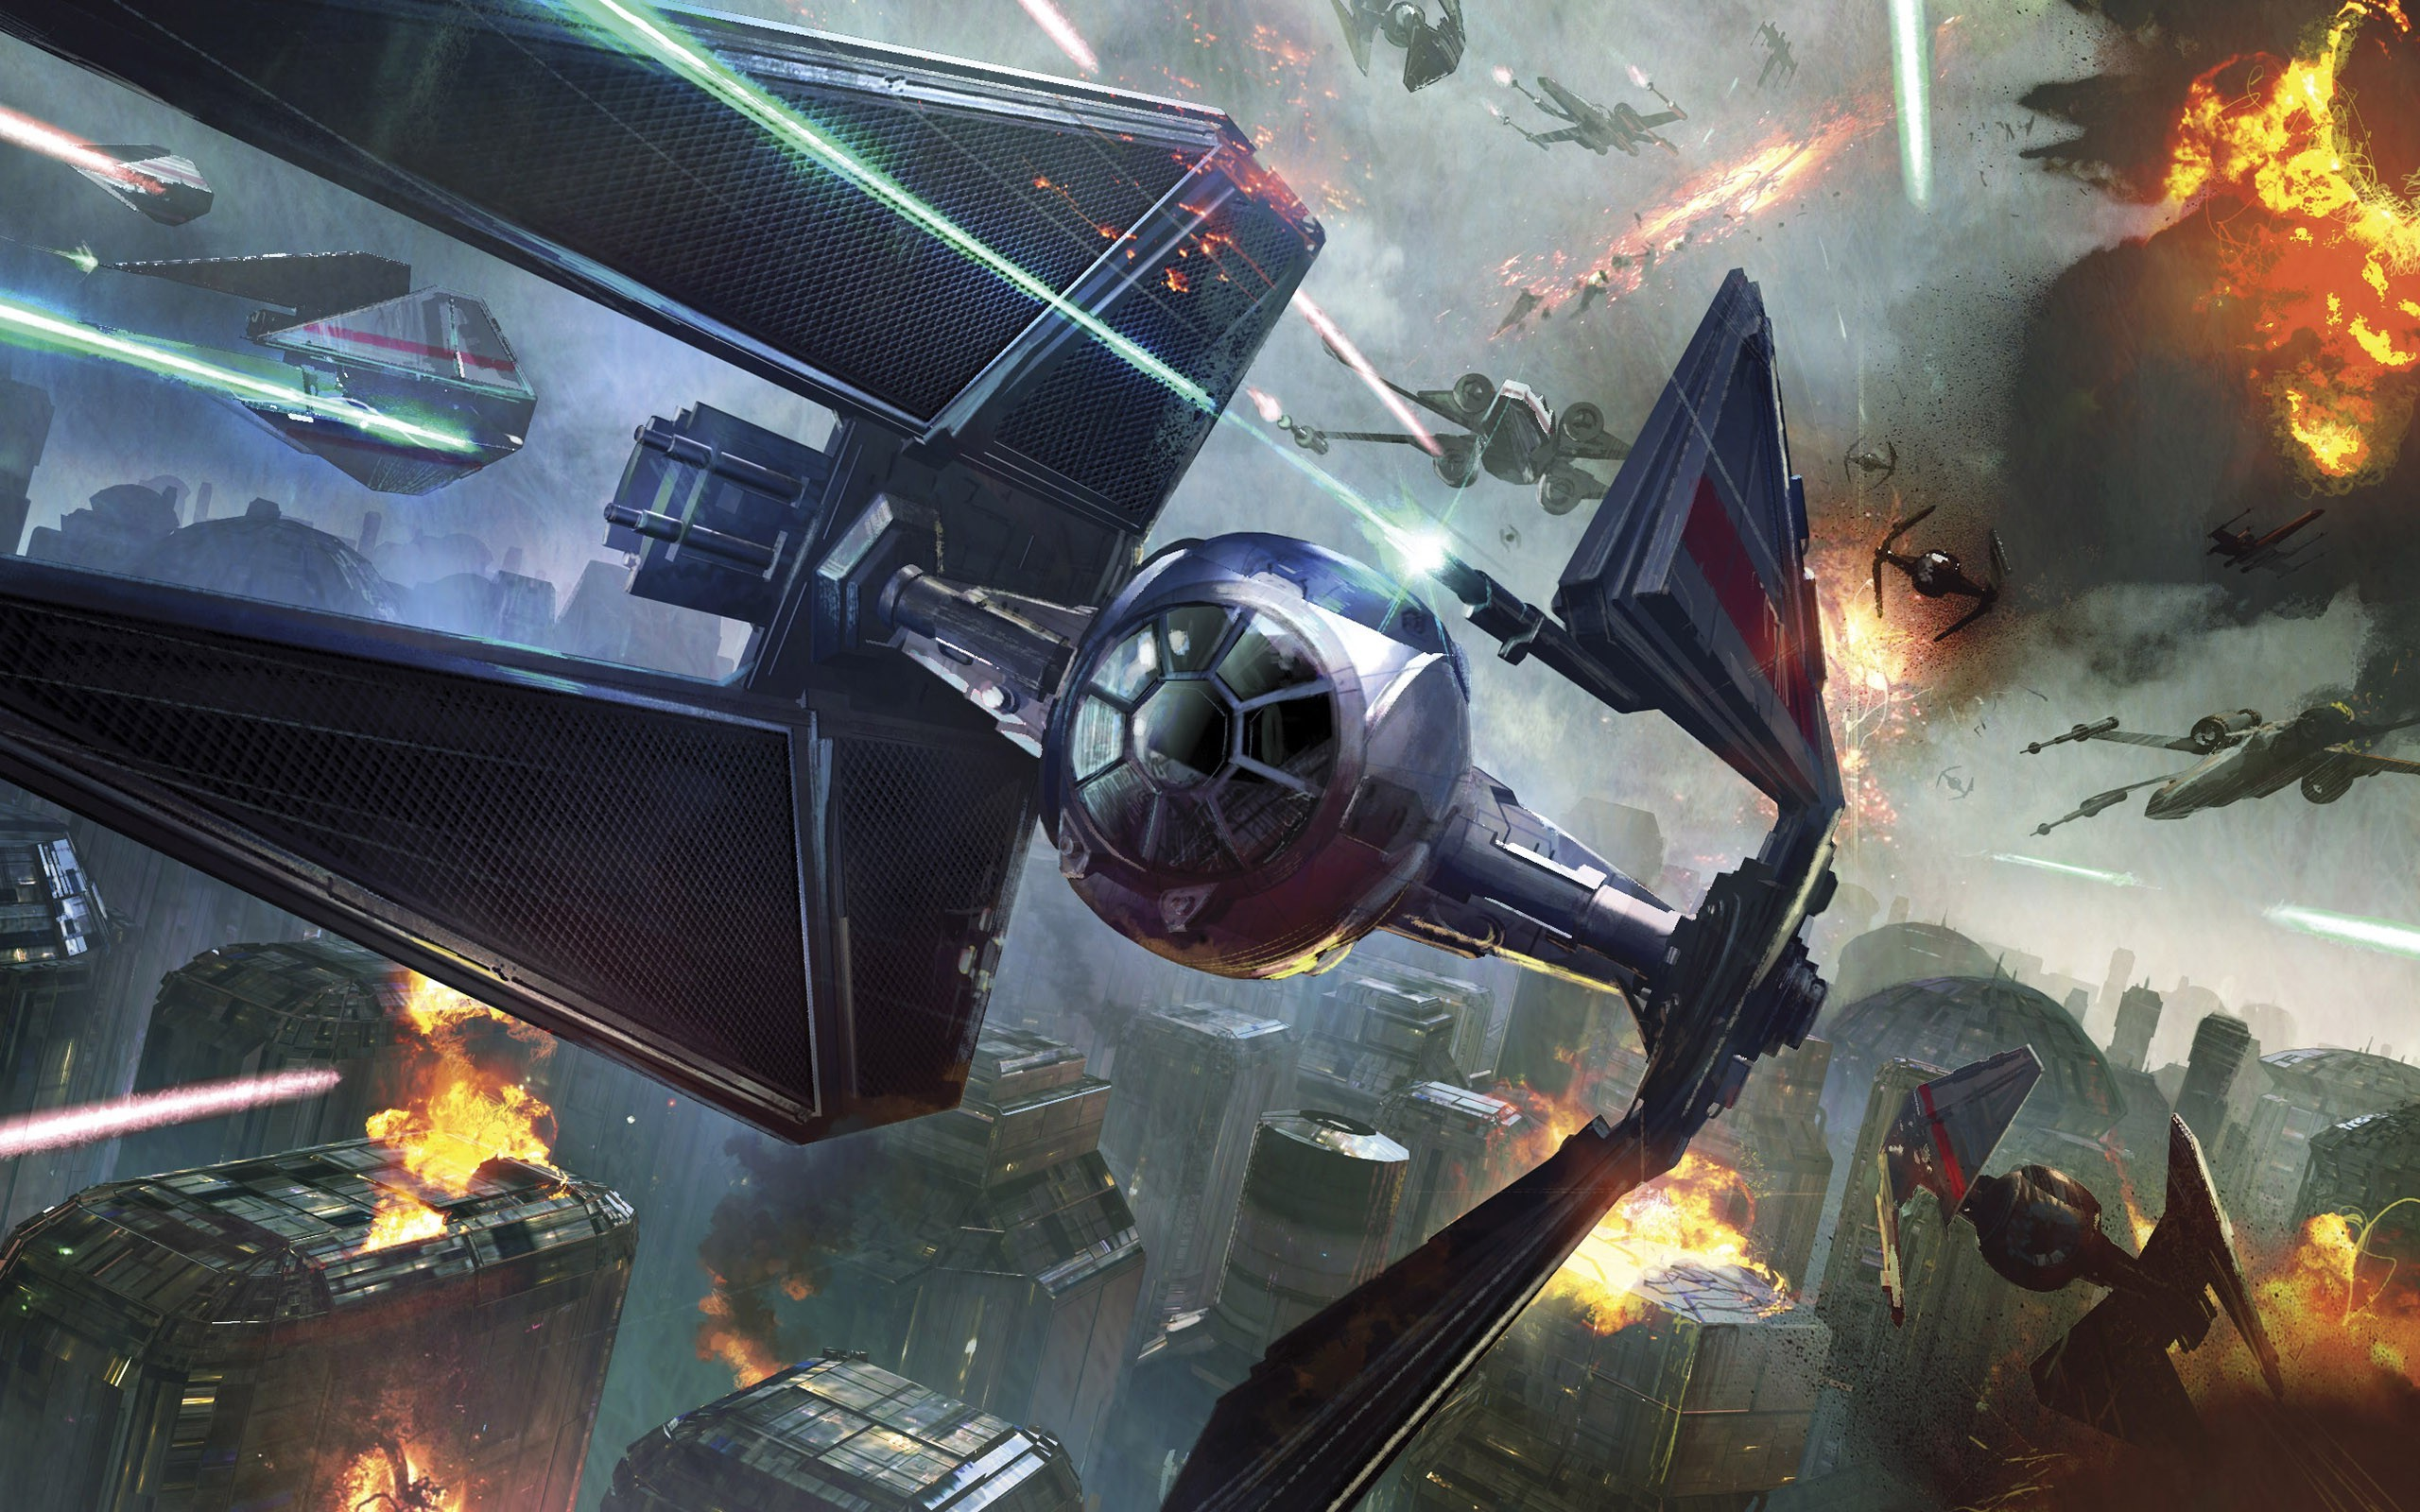 Star Wars Space Battle Wallpaper 61 images 2560x1600